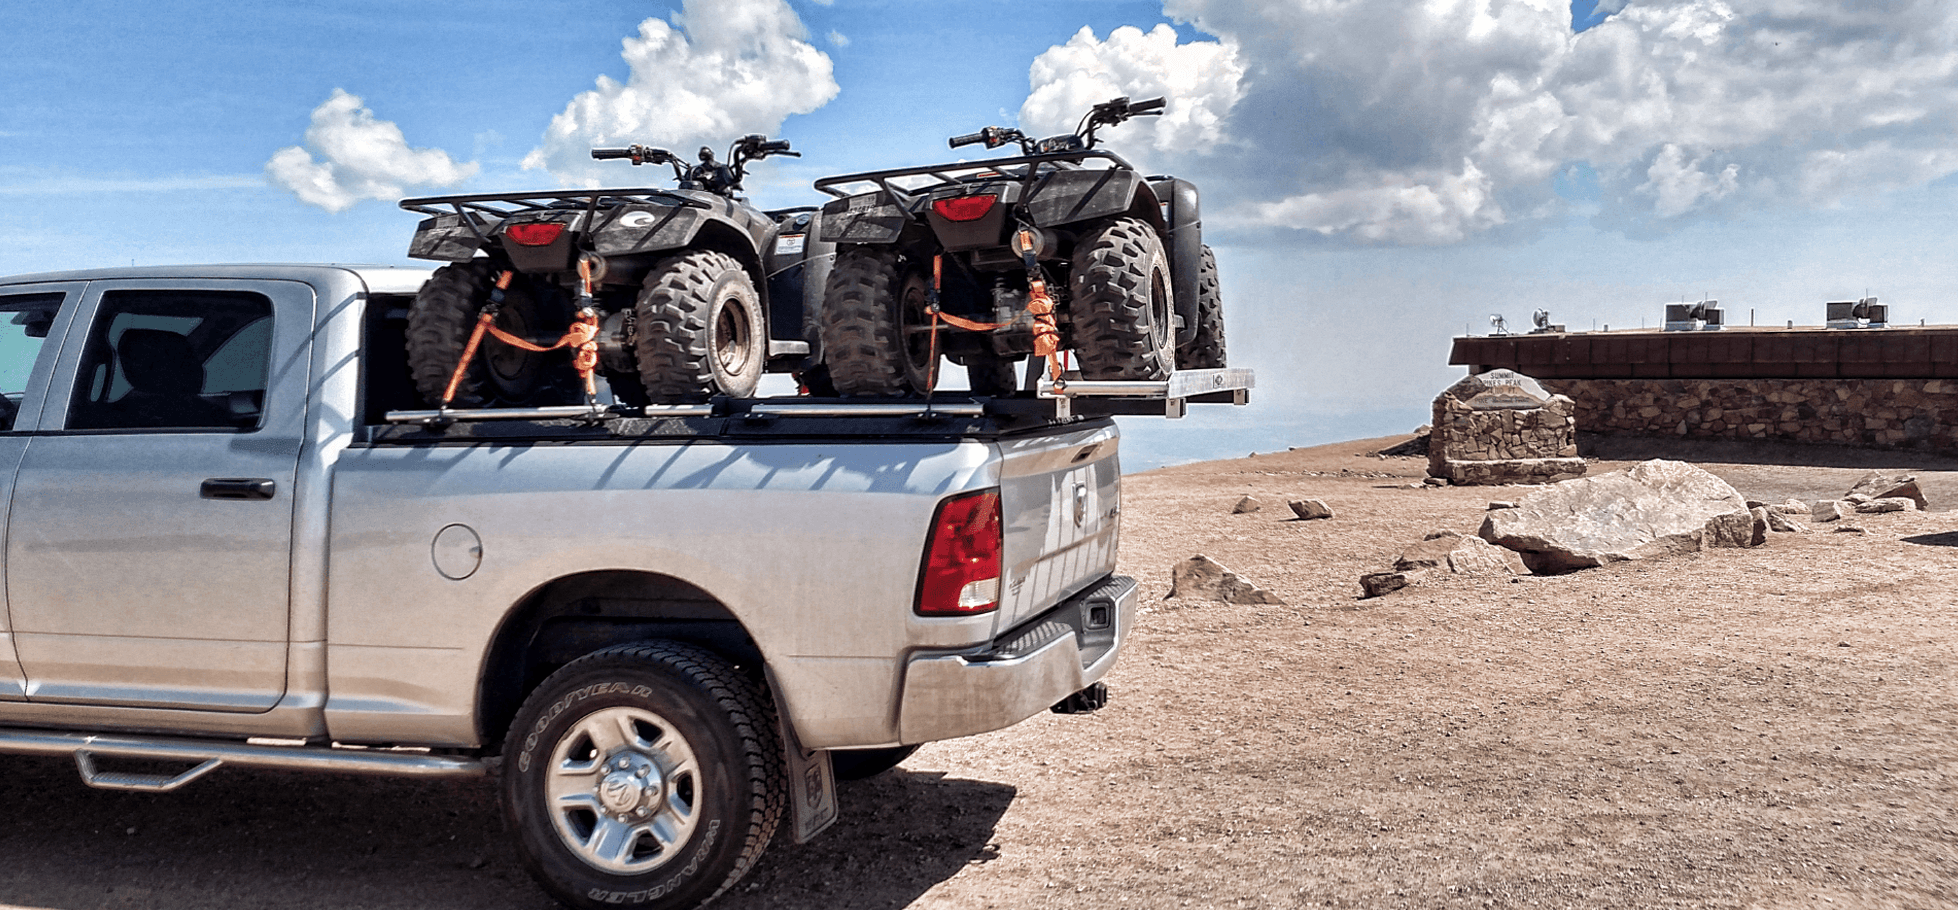 two atvs on atv truck rack on ram truck at state park